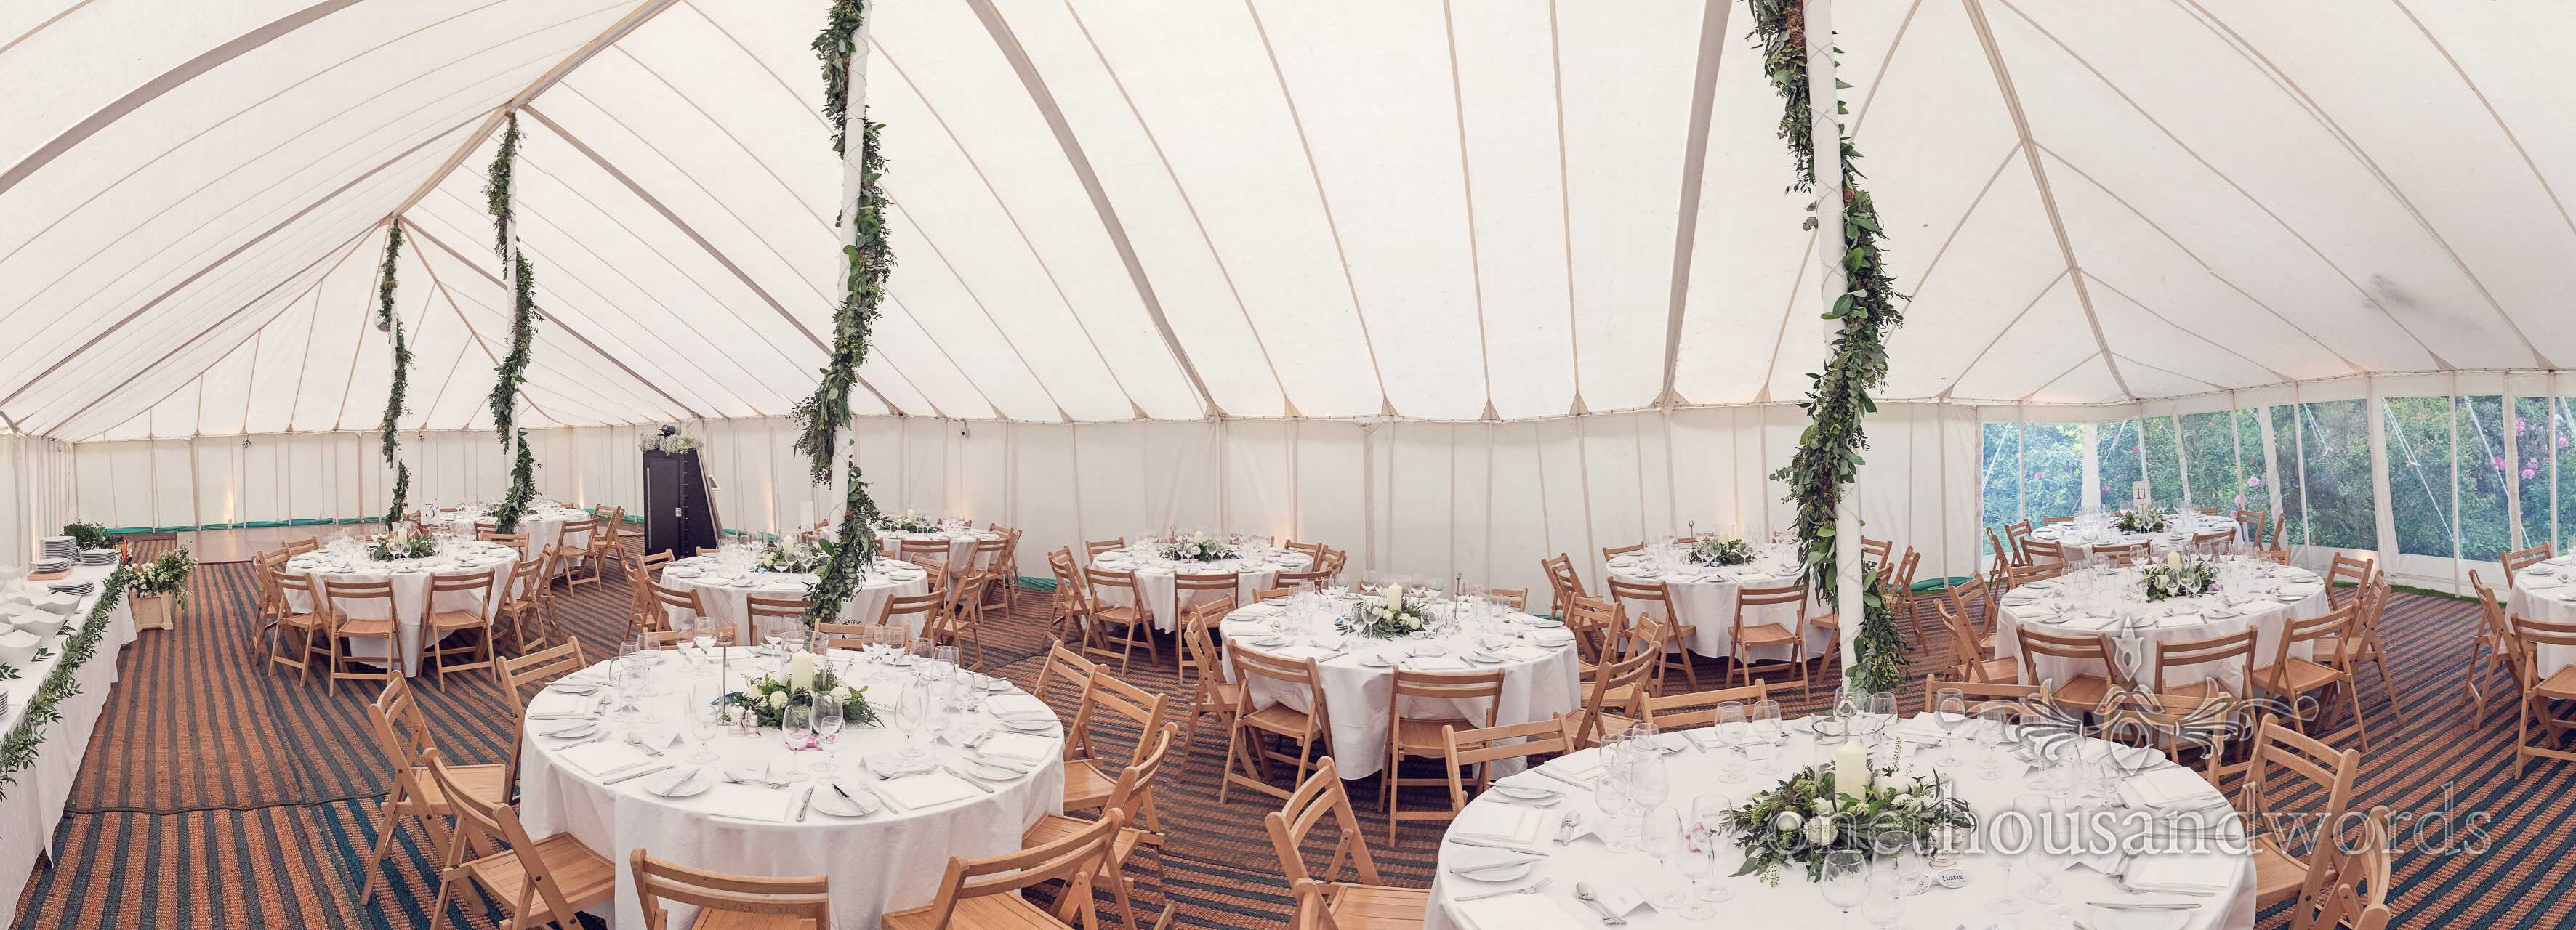 Wedding marquee table layout with white wedding flowers